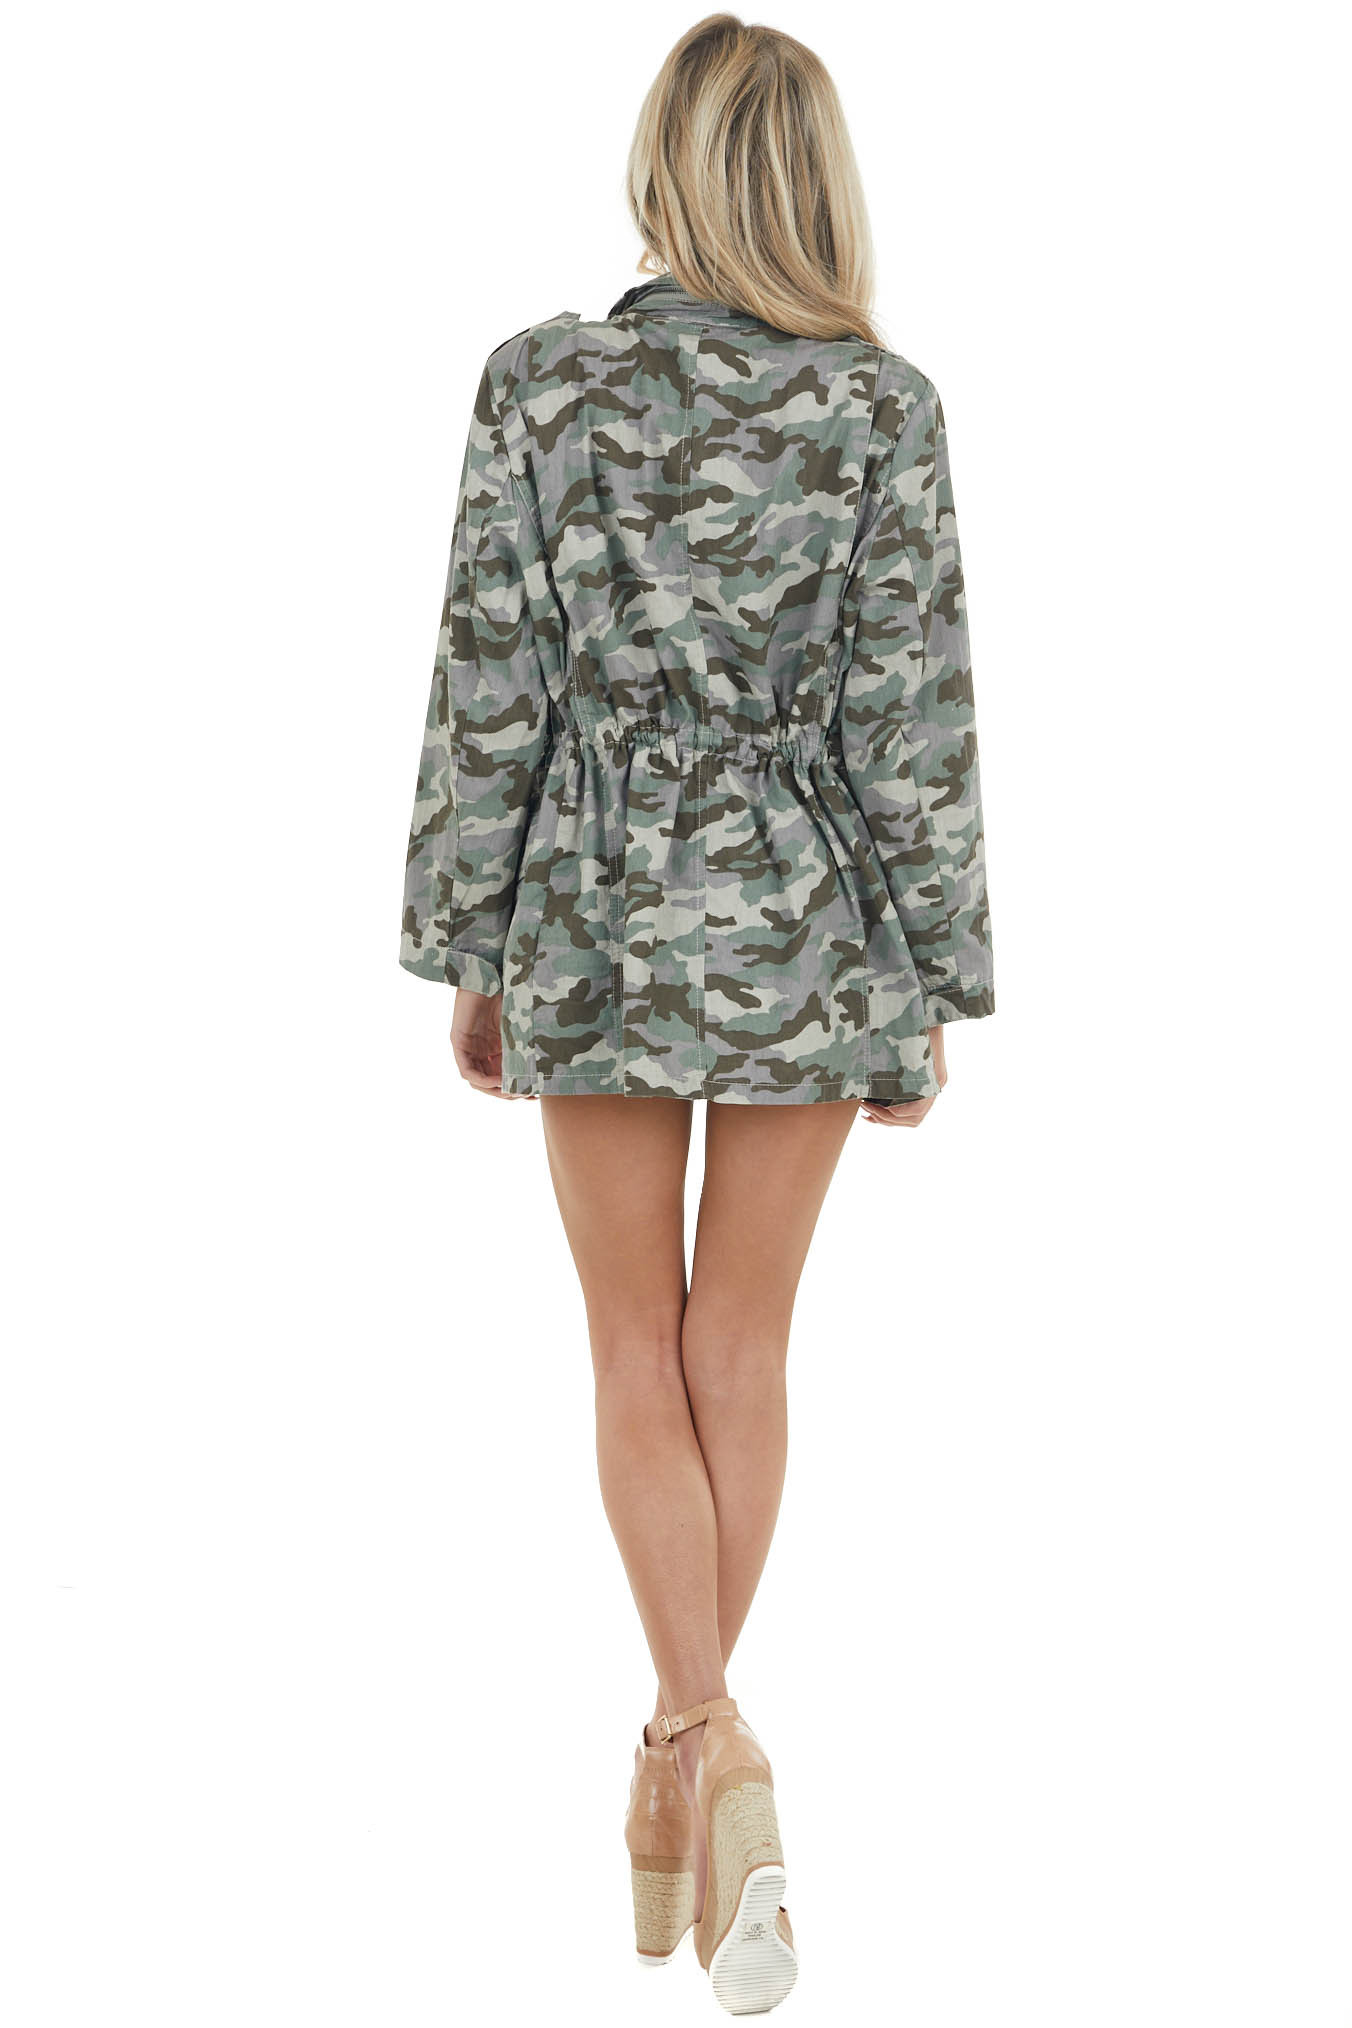 Forest Green Camo Cargo Jacket with Zipper Details